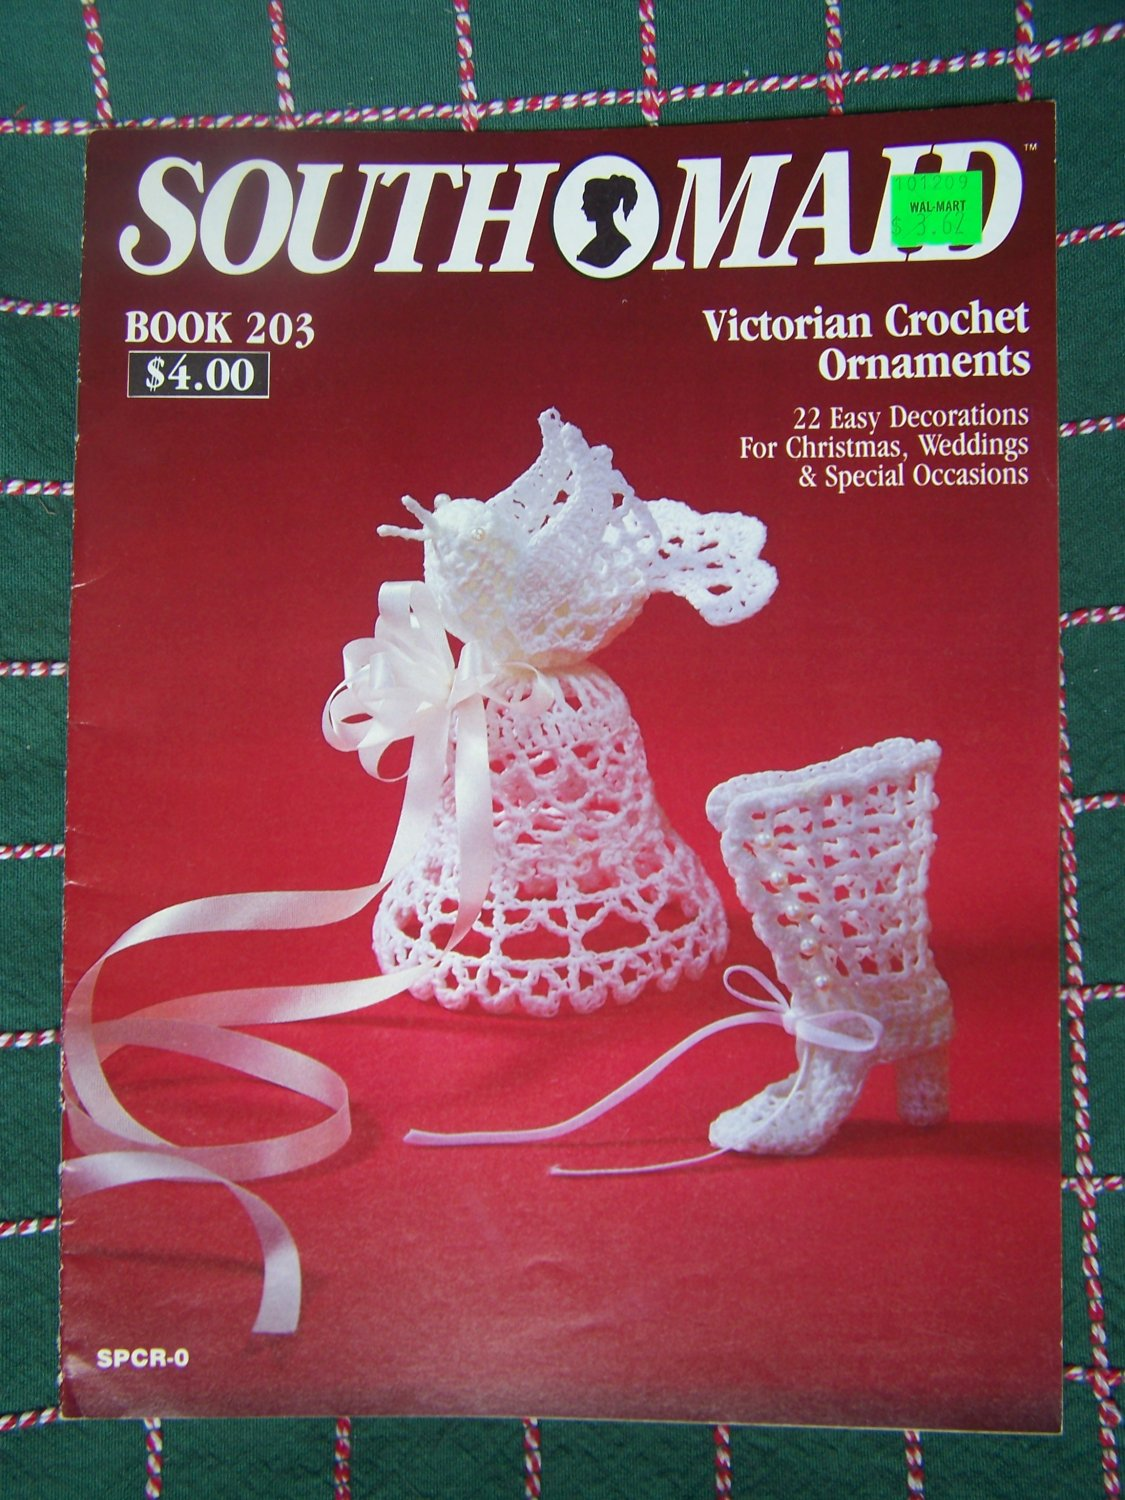 Vintage 22 Easy Victorian Christmas Crochet Patterns Ornaments Decorations